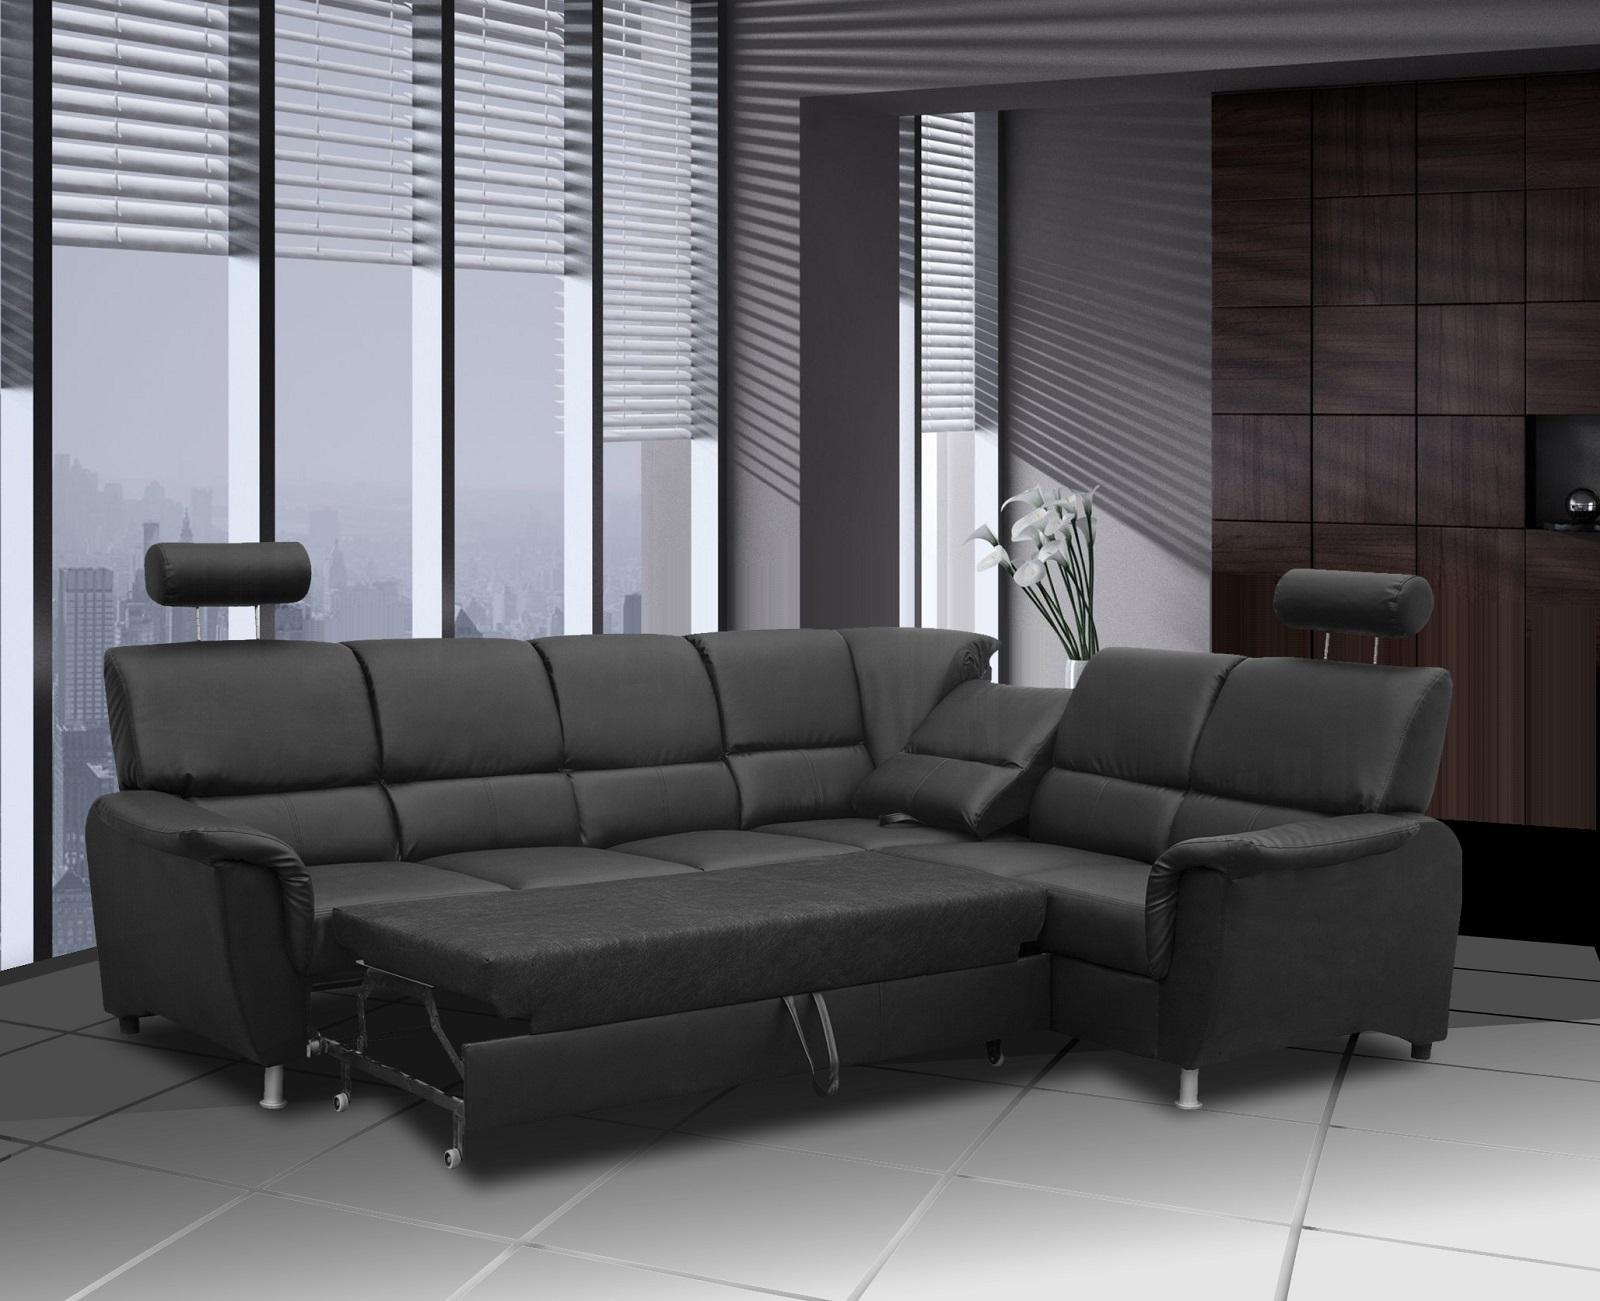 13 Sleeper Sofa San Diego | Carehouse Regarding Sleeper Sofas San Diego (View 9 of 20)